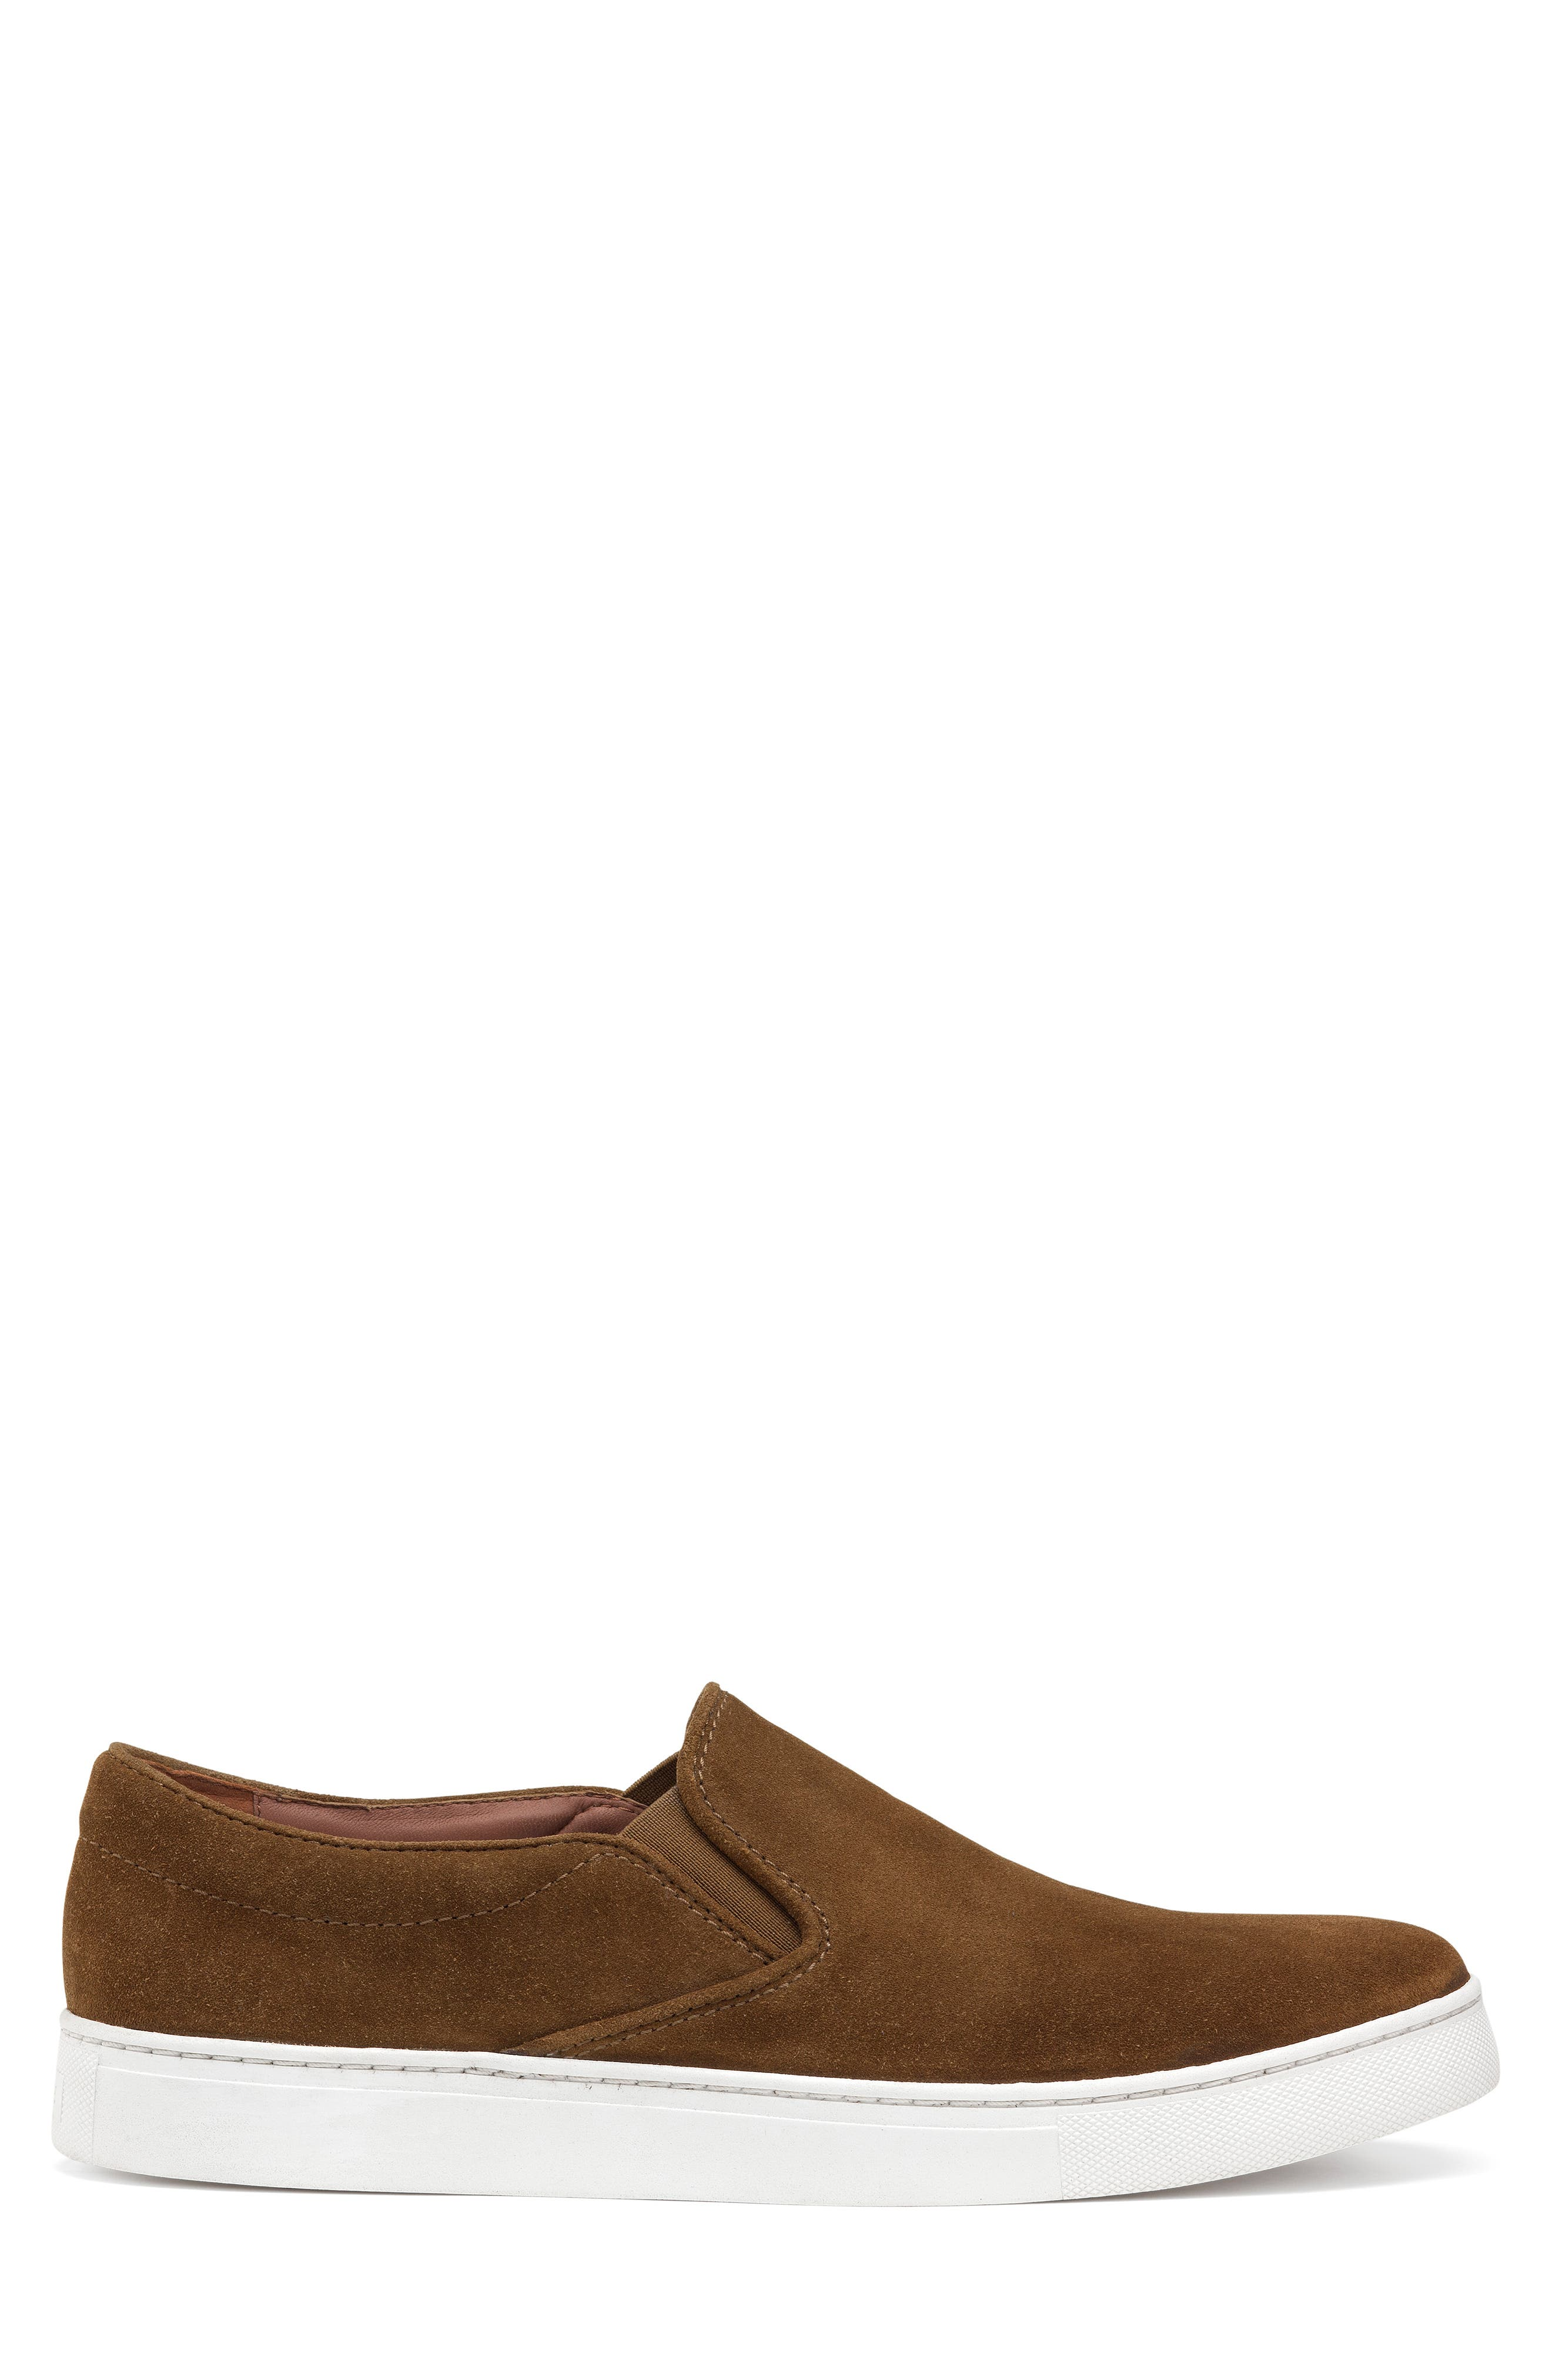 TRASK, Alex Slip-On Sneaker, Alternate thumbnail 3, color, SNUFF SUEDE